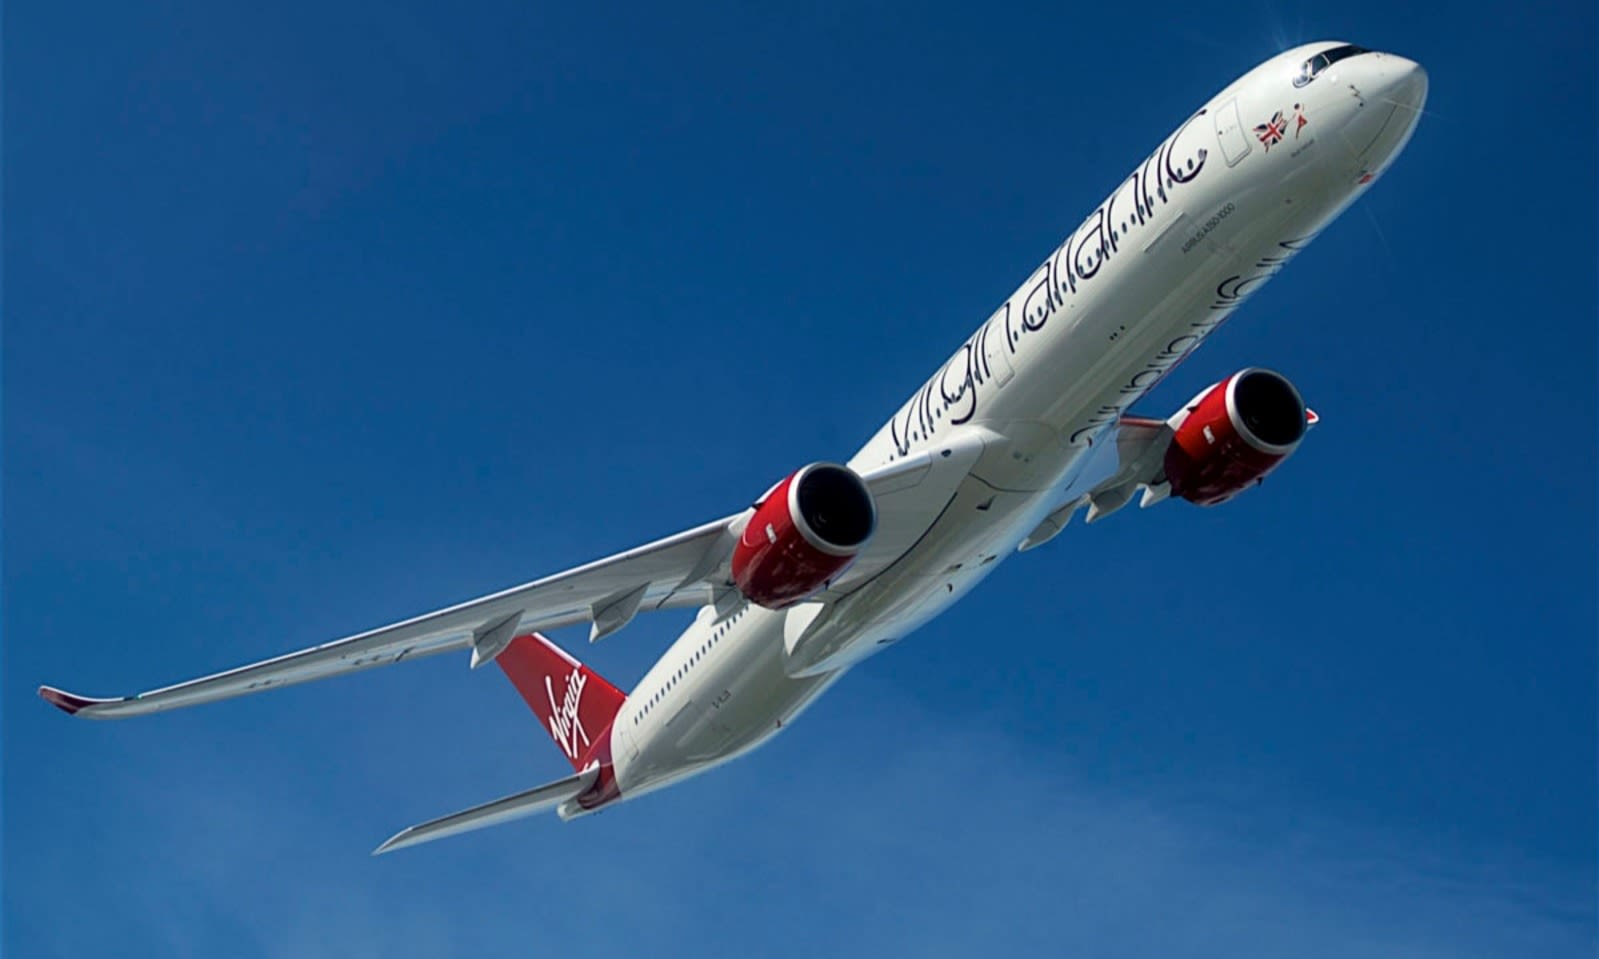 A Virgin Aircraft in flight through blue skies